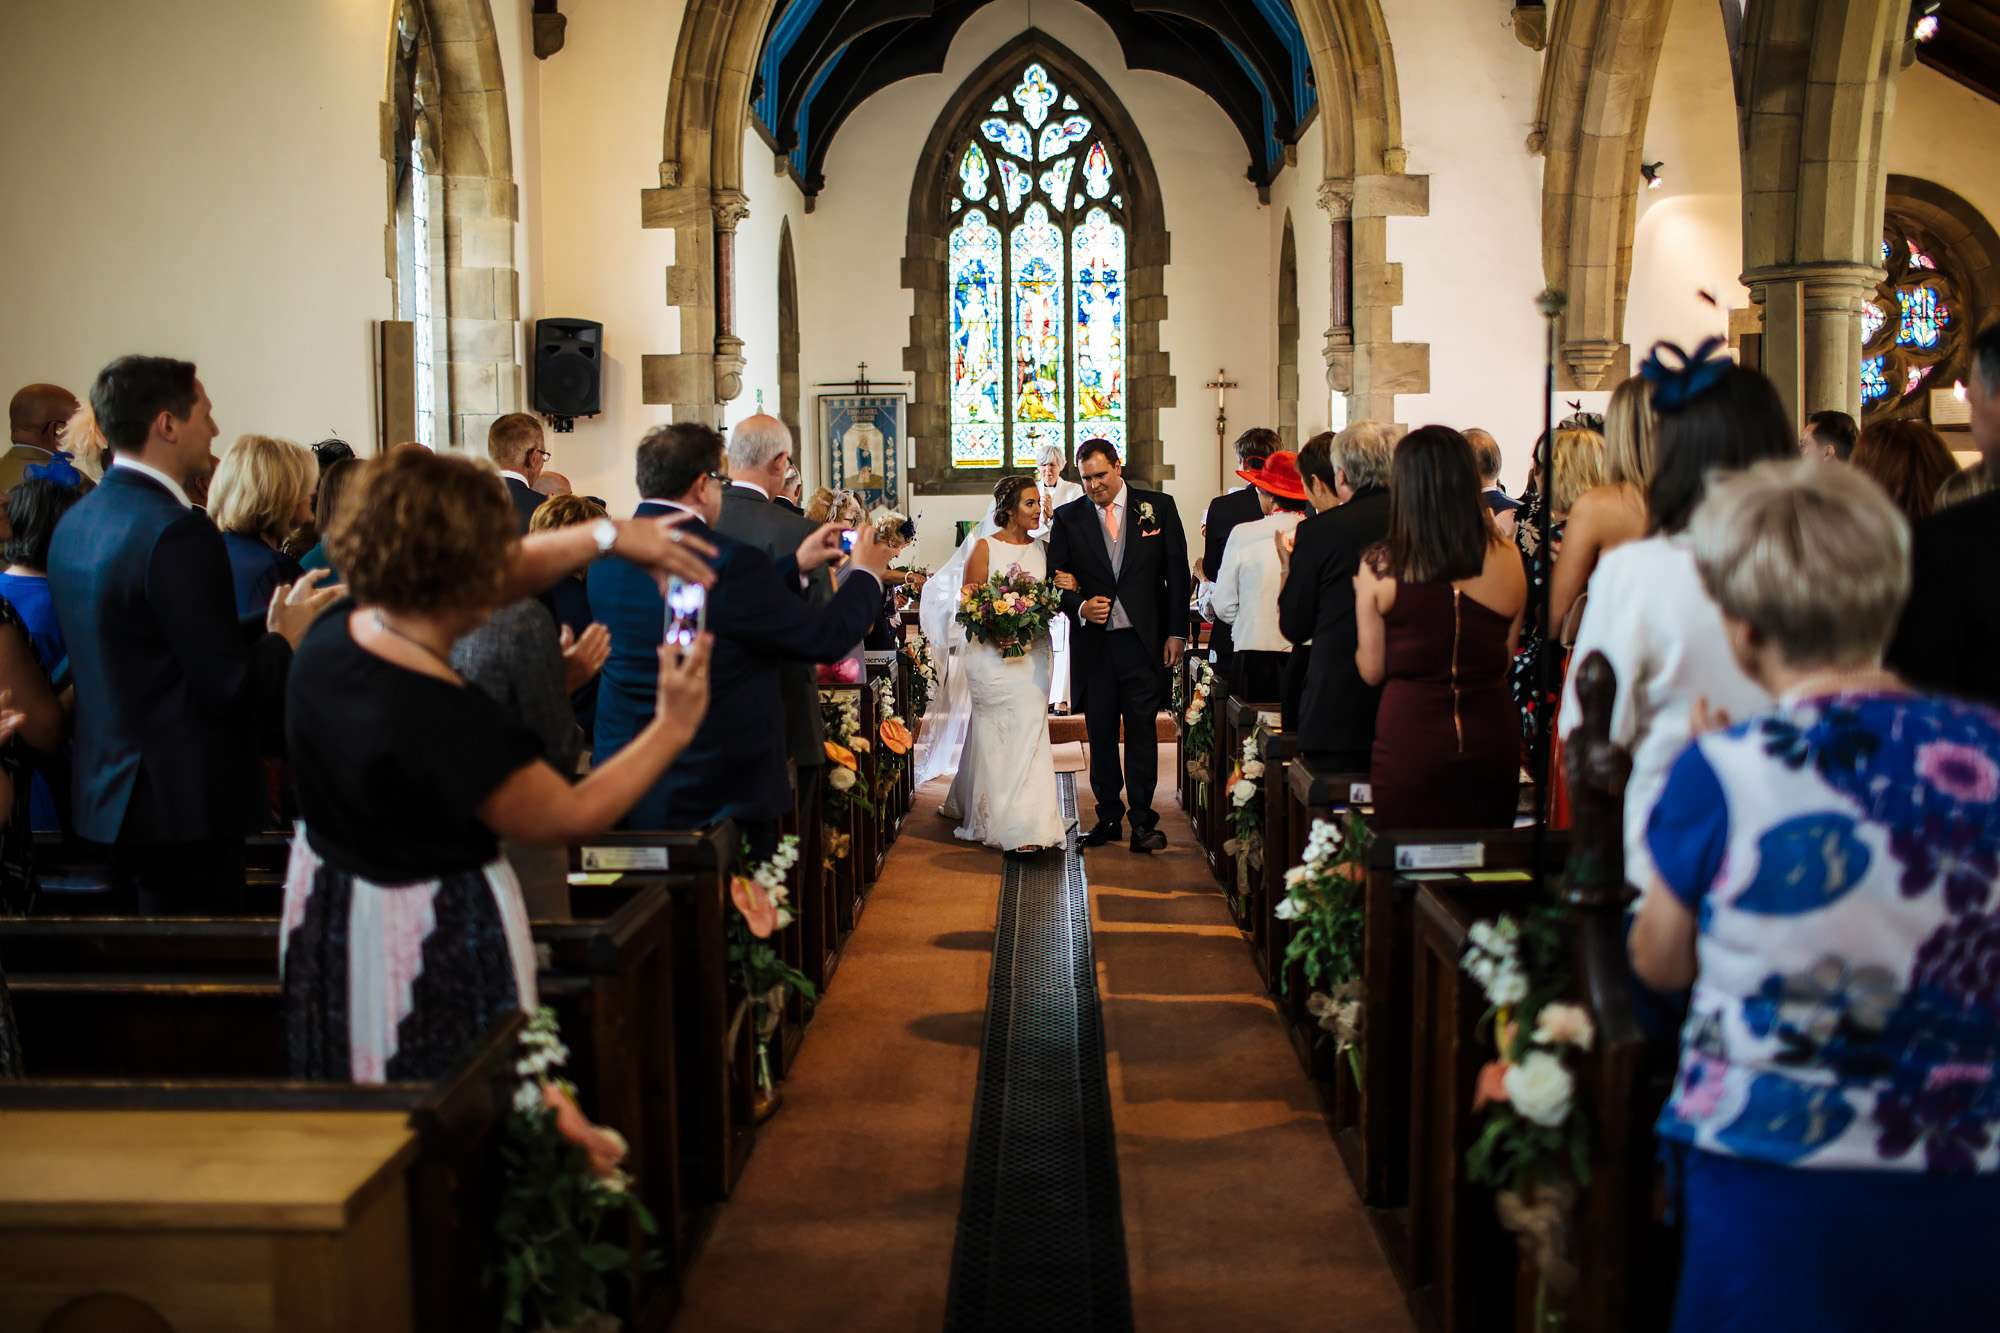 Newlyweds walking down the church aisle in Huddersfield